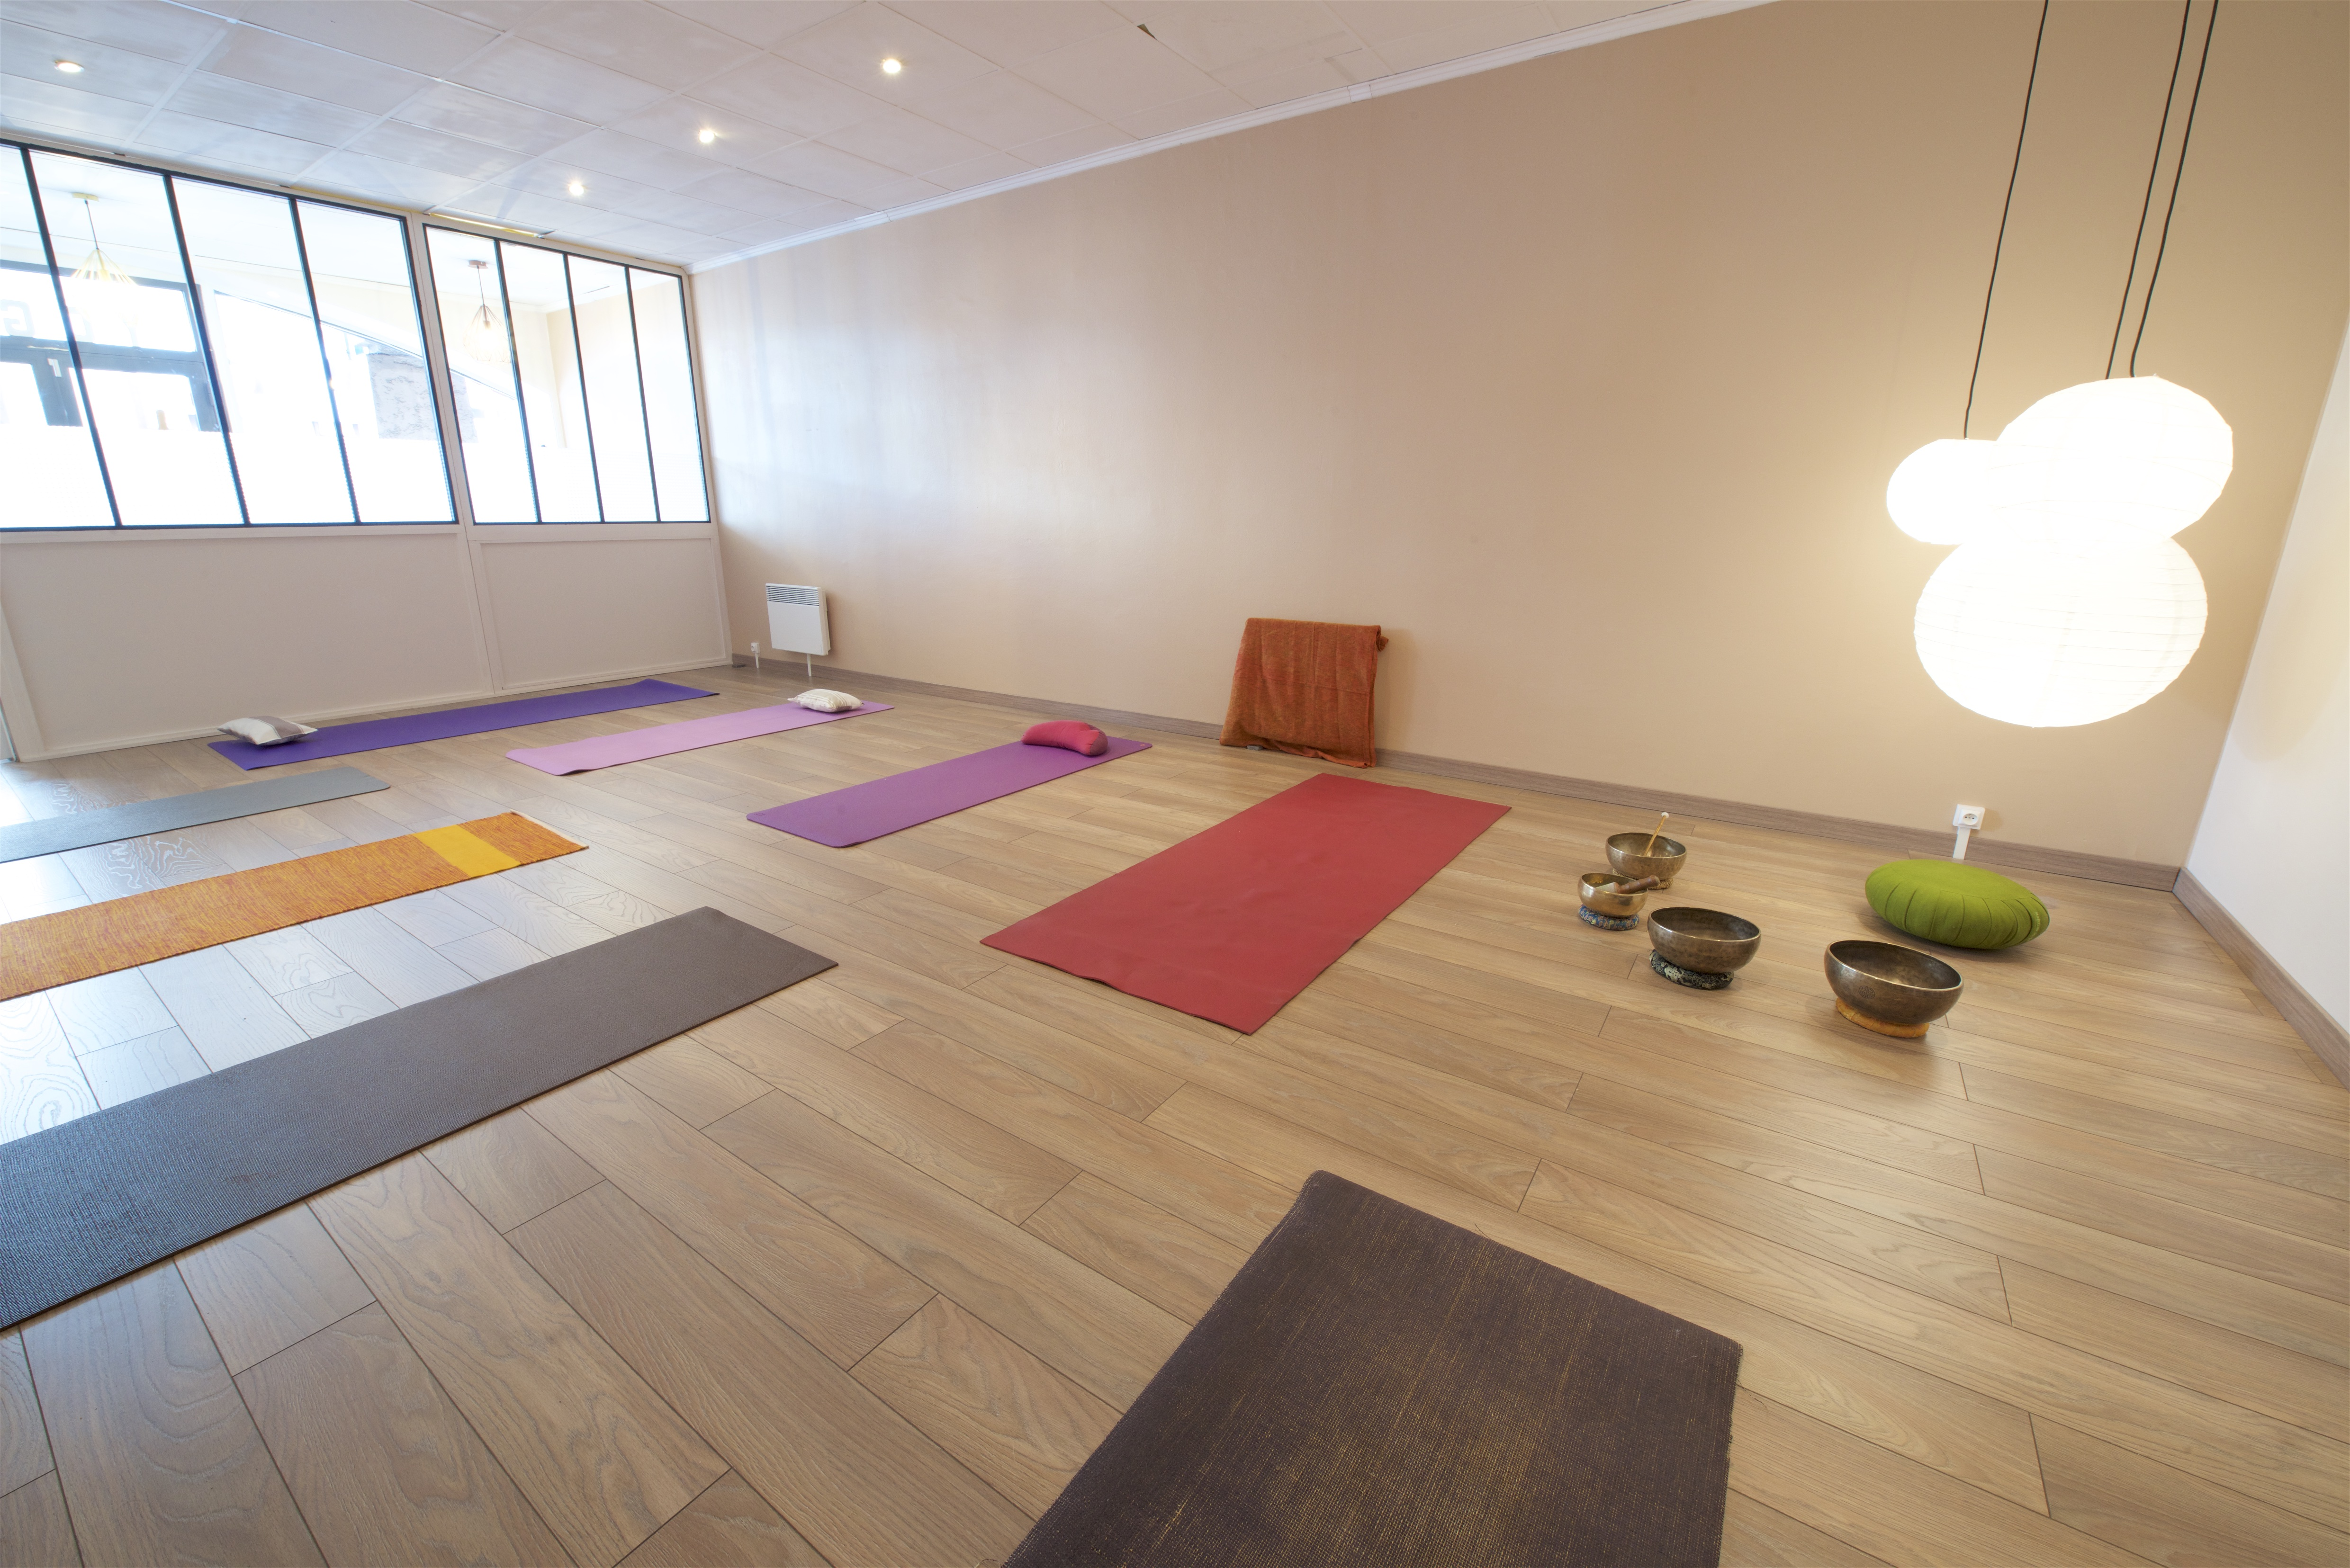 photos de la salle de yoga at aum saint raphaël